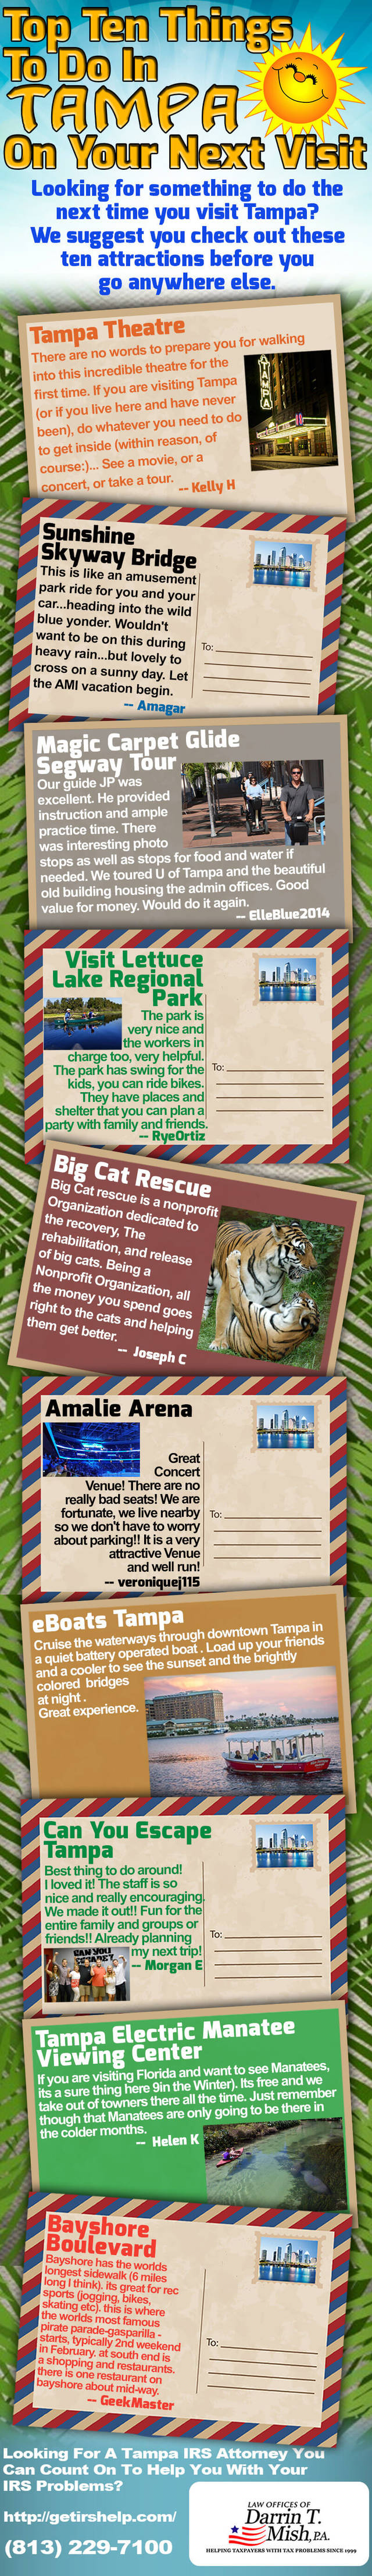 Top 10 attractions in tampa infographic